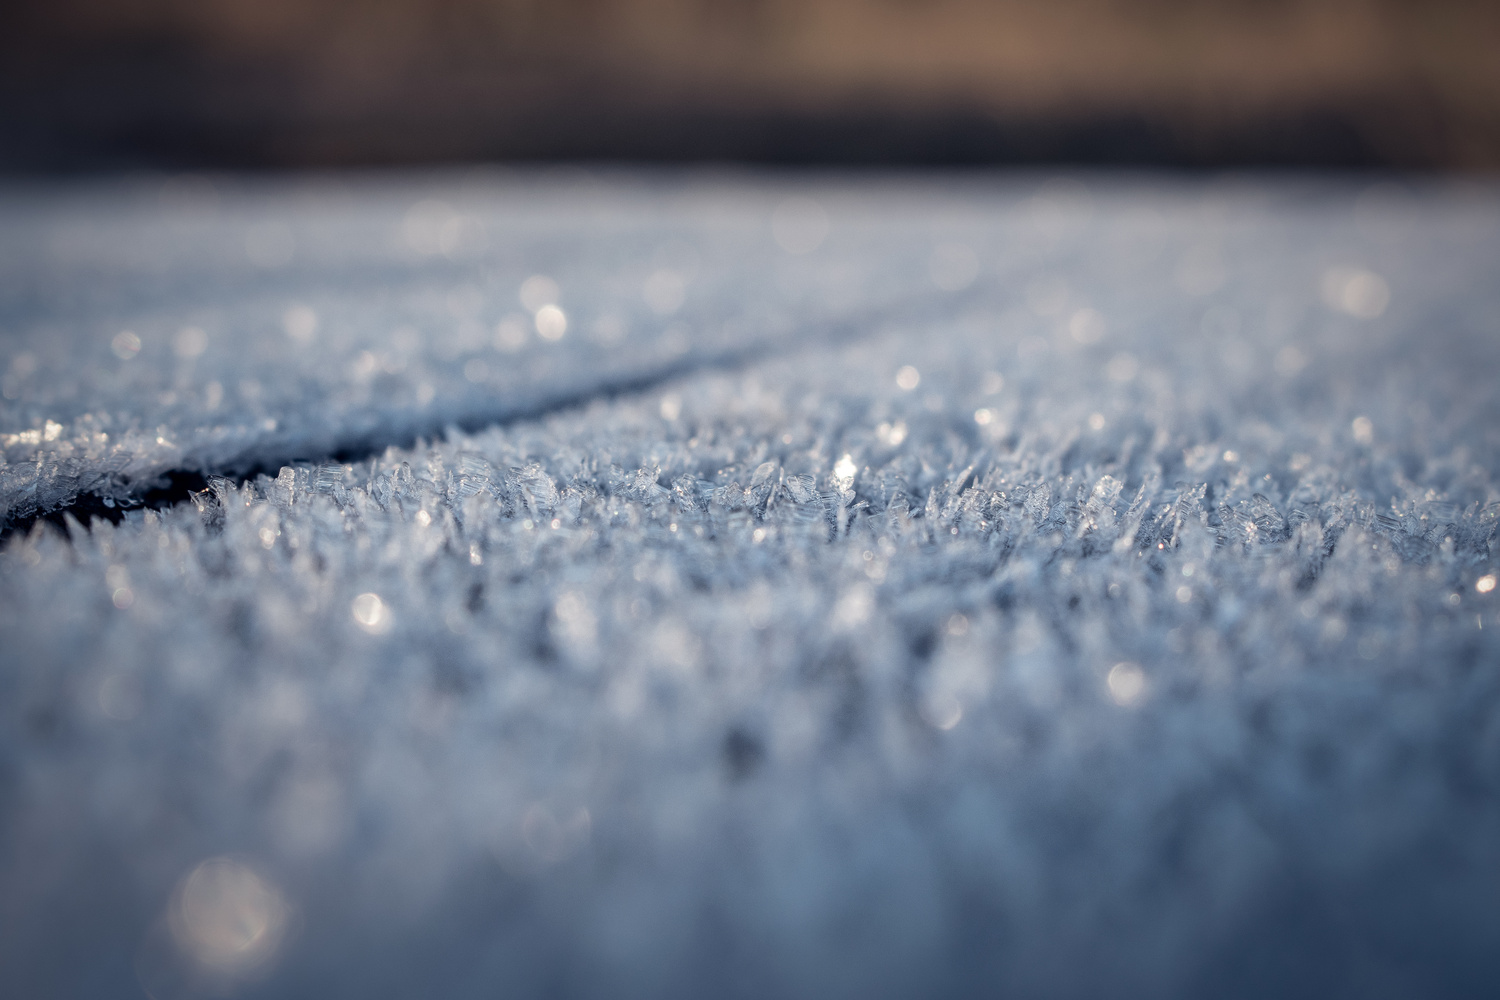 Icy table by Rene Larsen